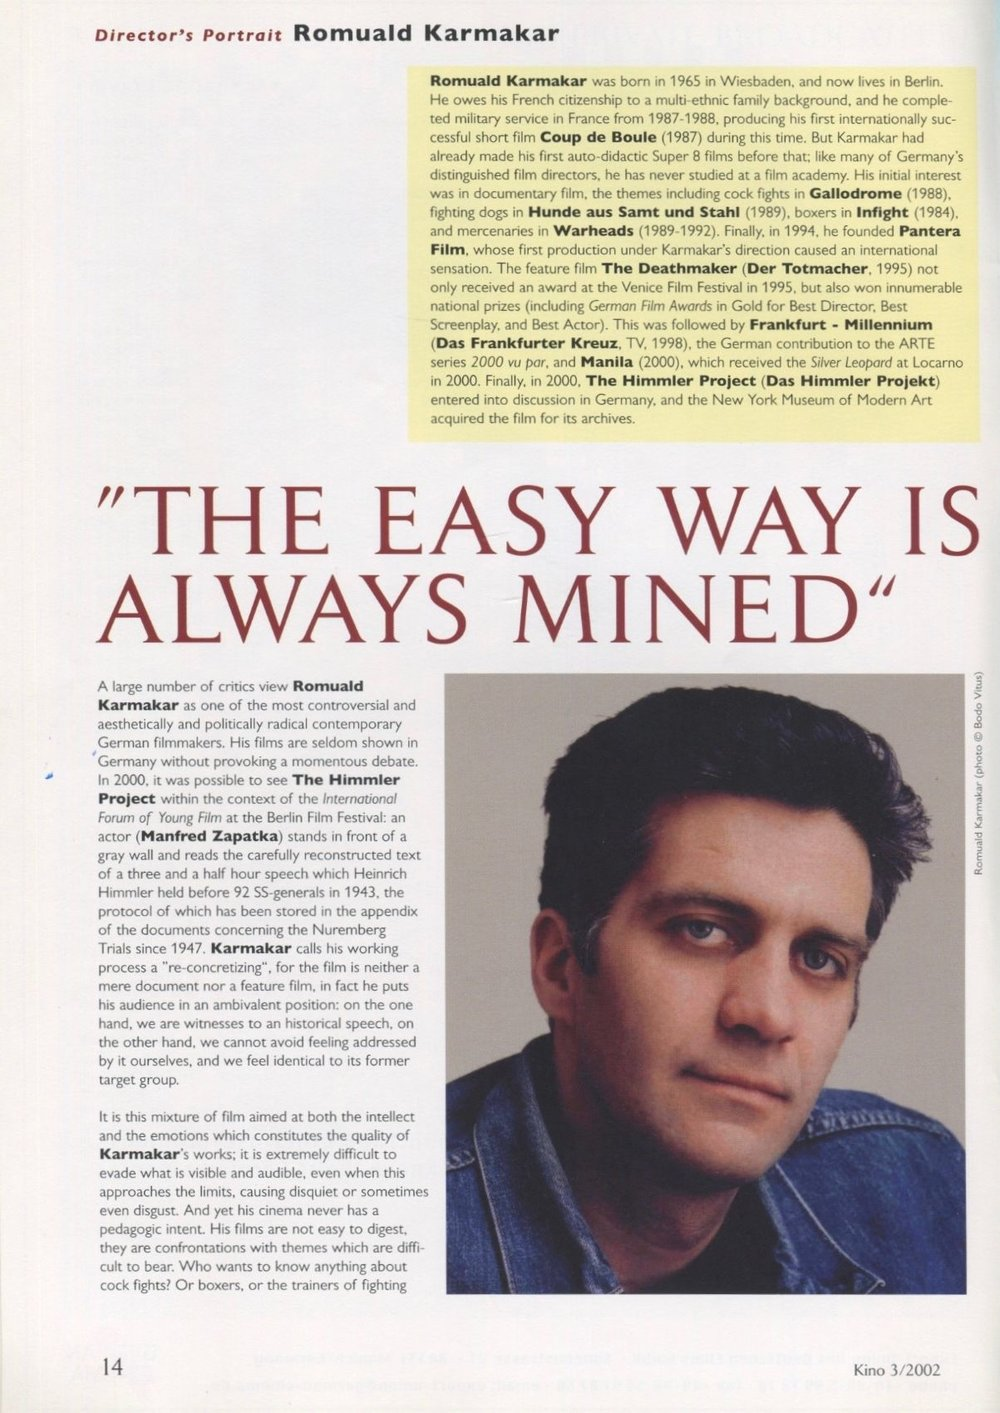 """THE EASY WAY IS ALWAYS MINED"""